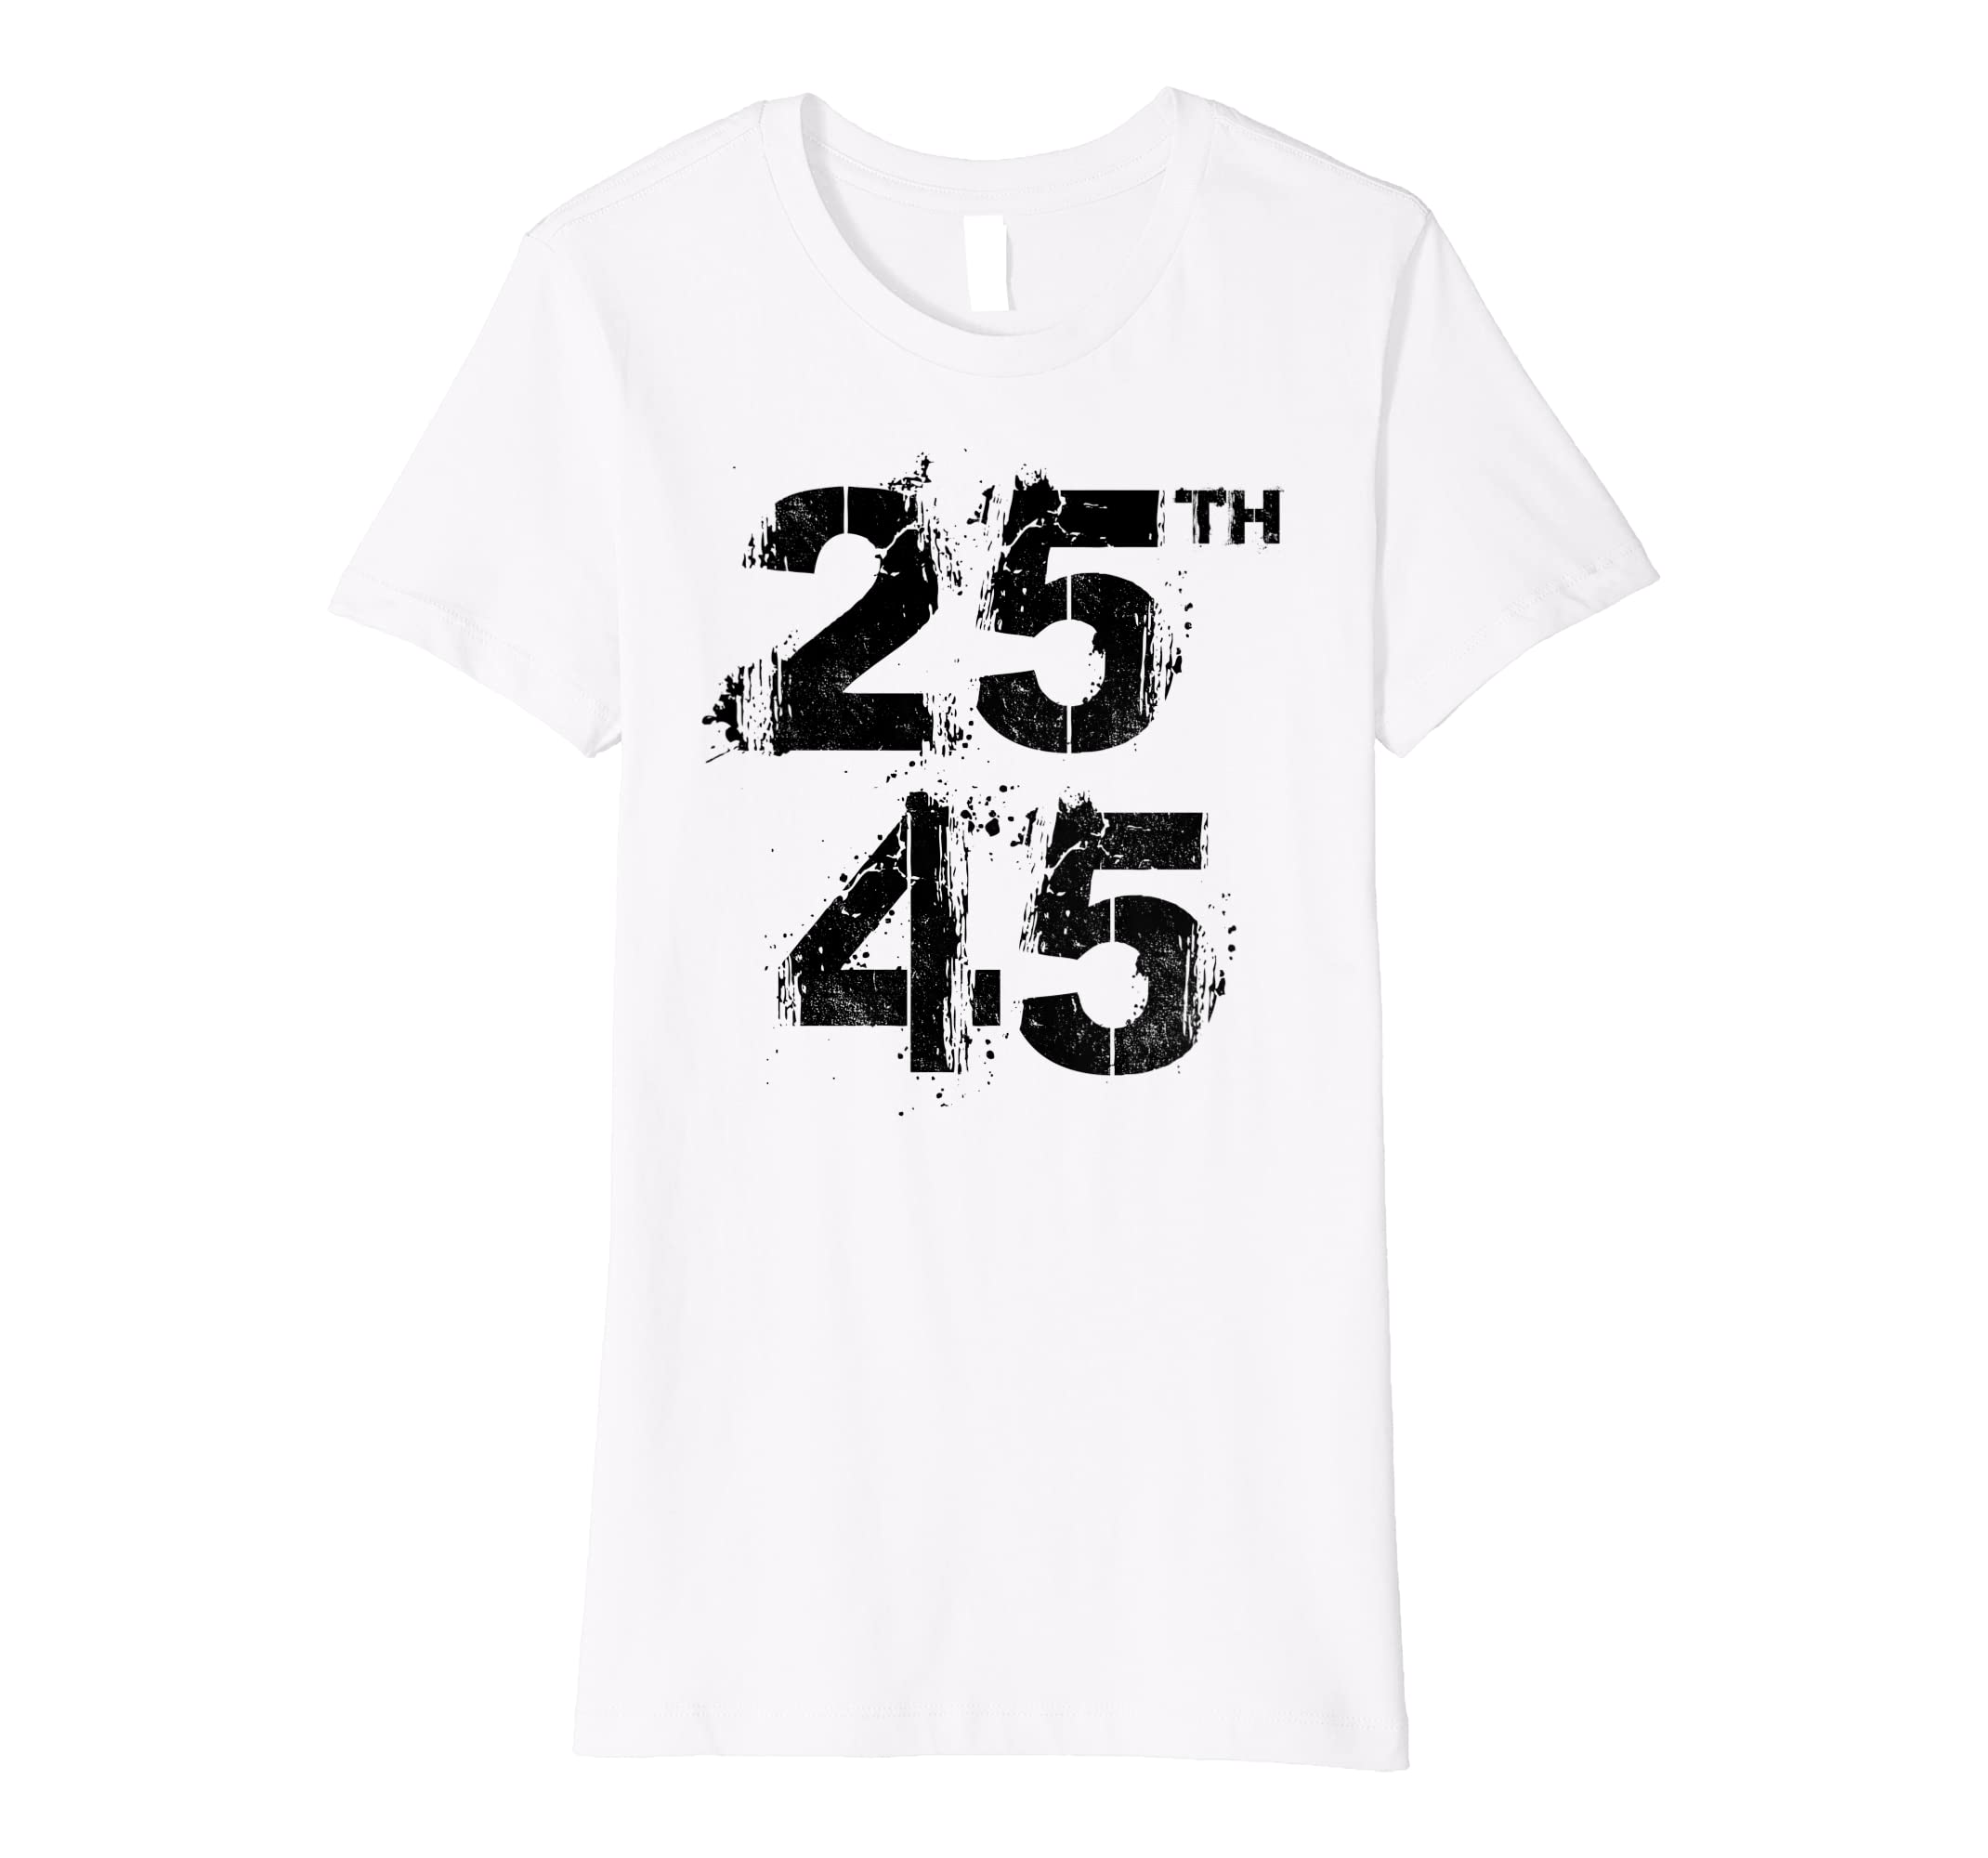 00ee417e1 Personalised T Shirt Amazon - DREAMWORKS